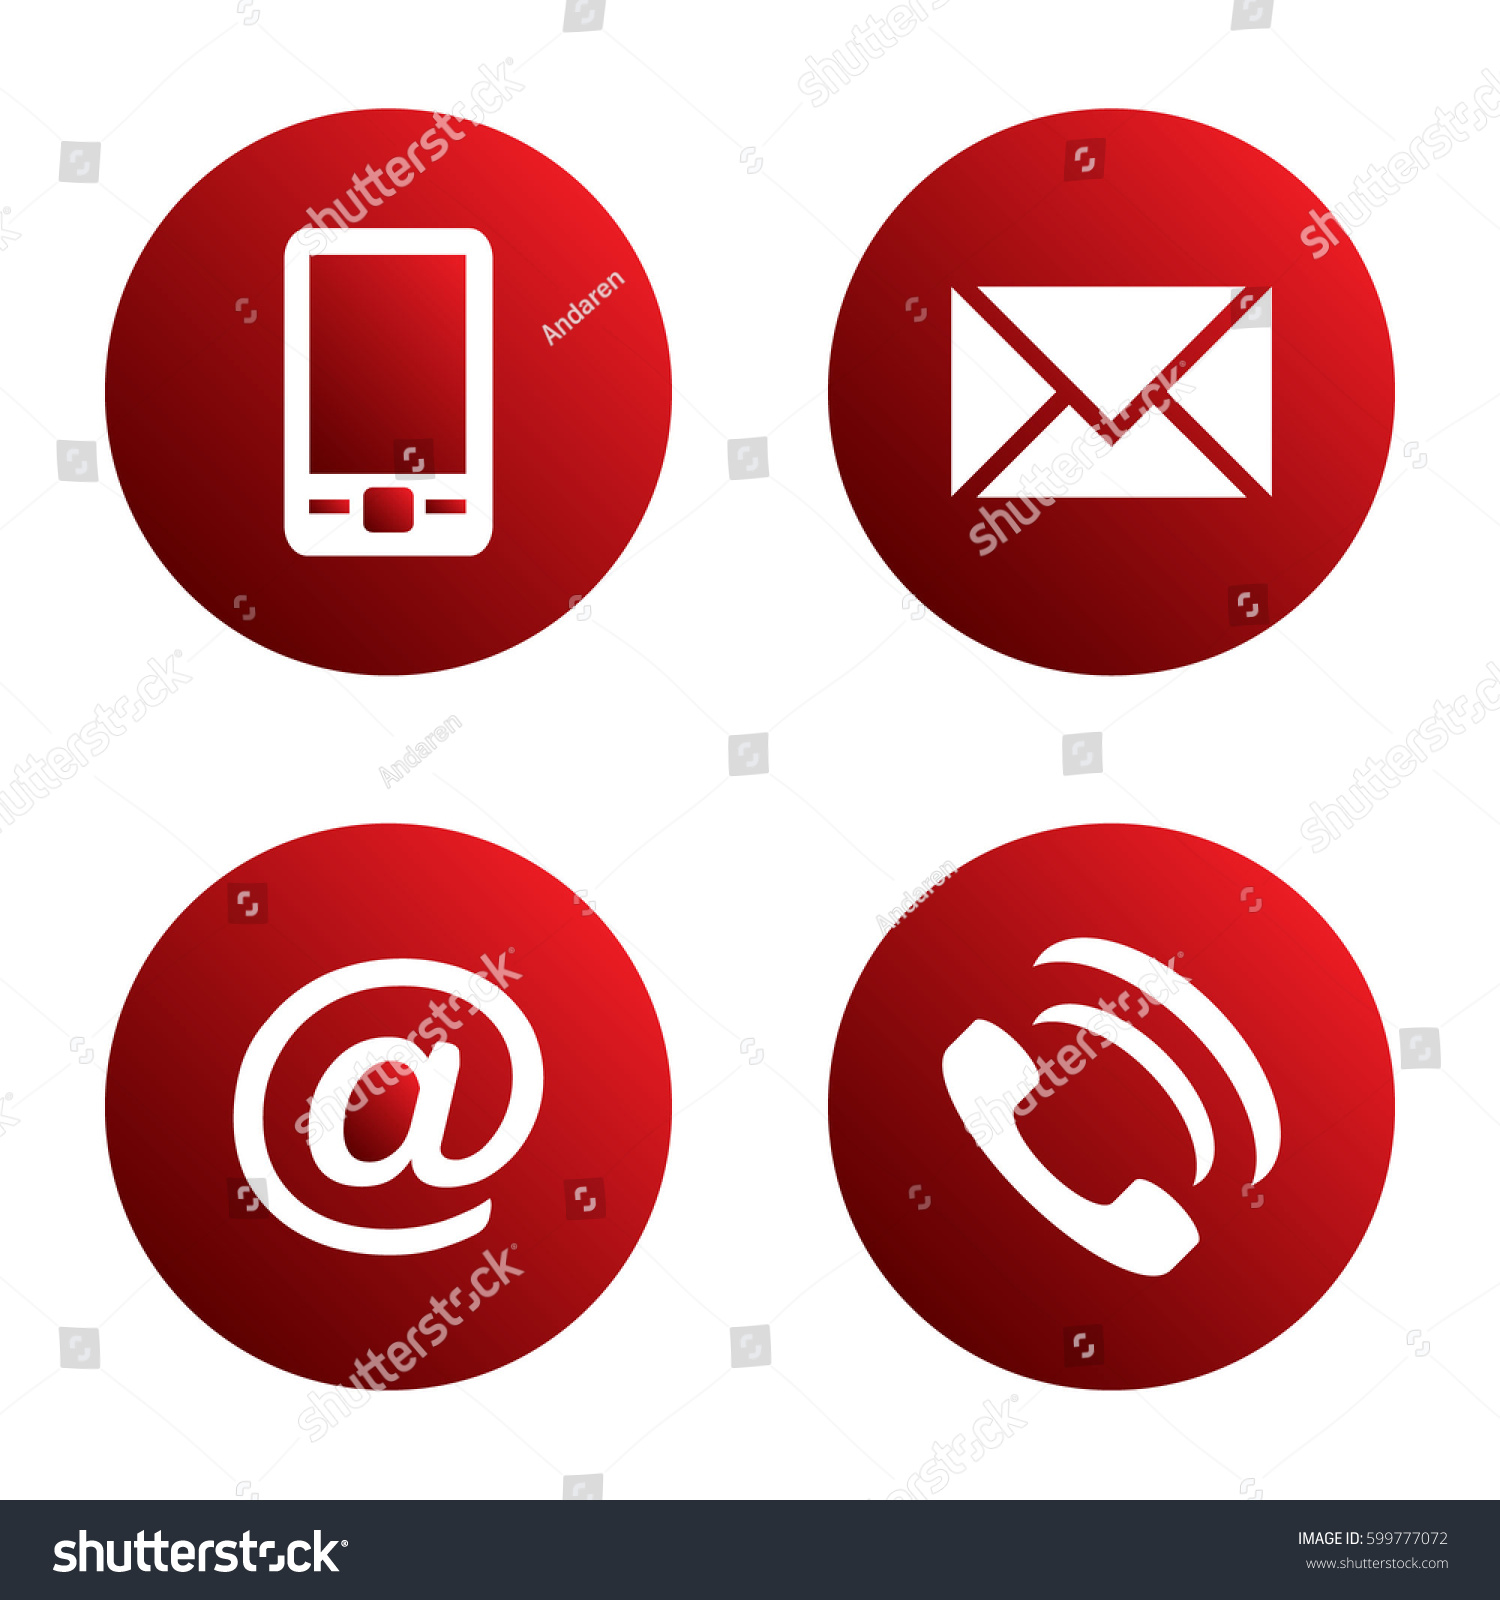 how to make email id in mobile phone